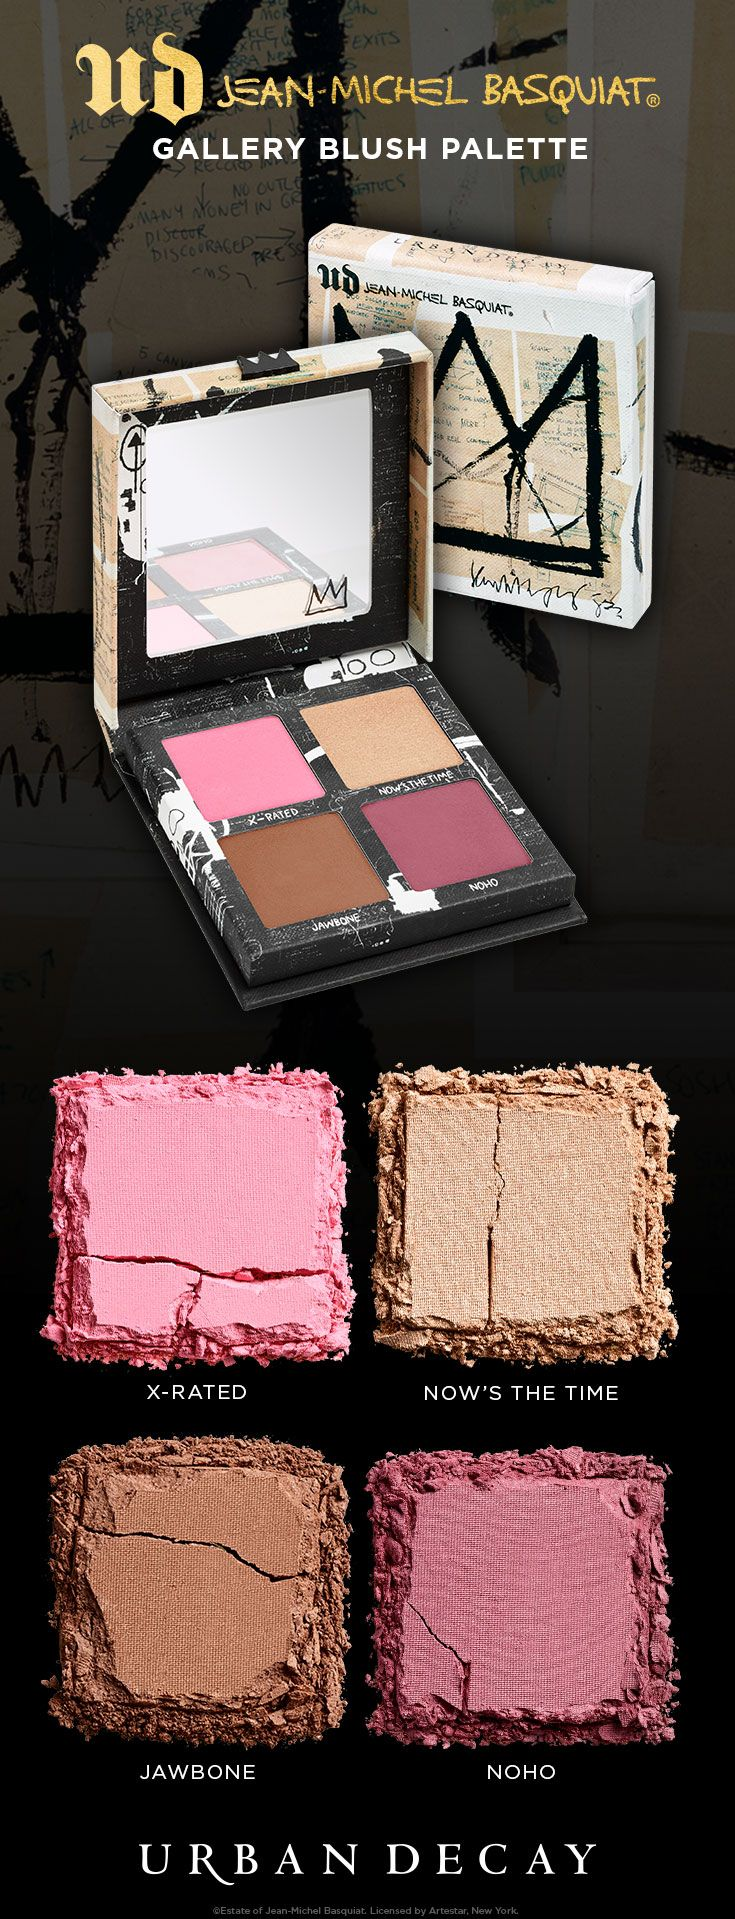 Gallery Blush Palette is a four-pan face palette that holds two shades of blush, a bronzer and a highlighter based on Basquiat's paintings. These versatile shades work on any skin tone, and our long-lasting Afterglow formula delivers 8 hours of wear.